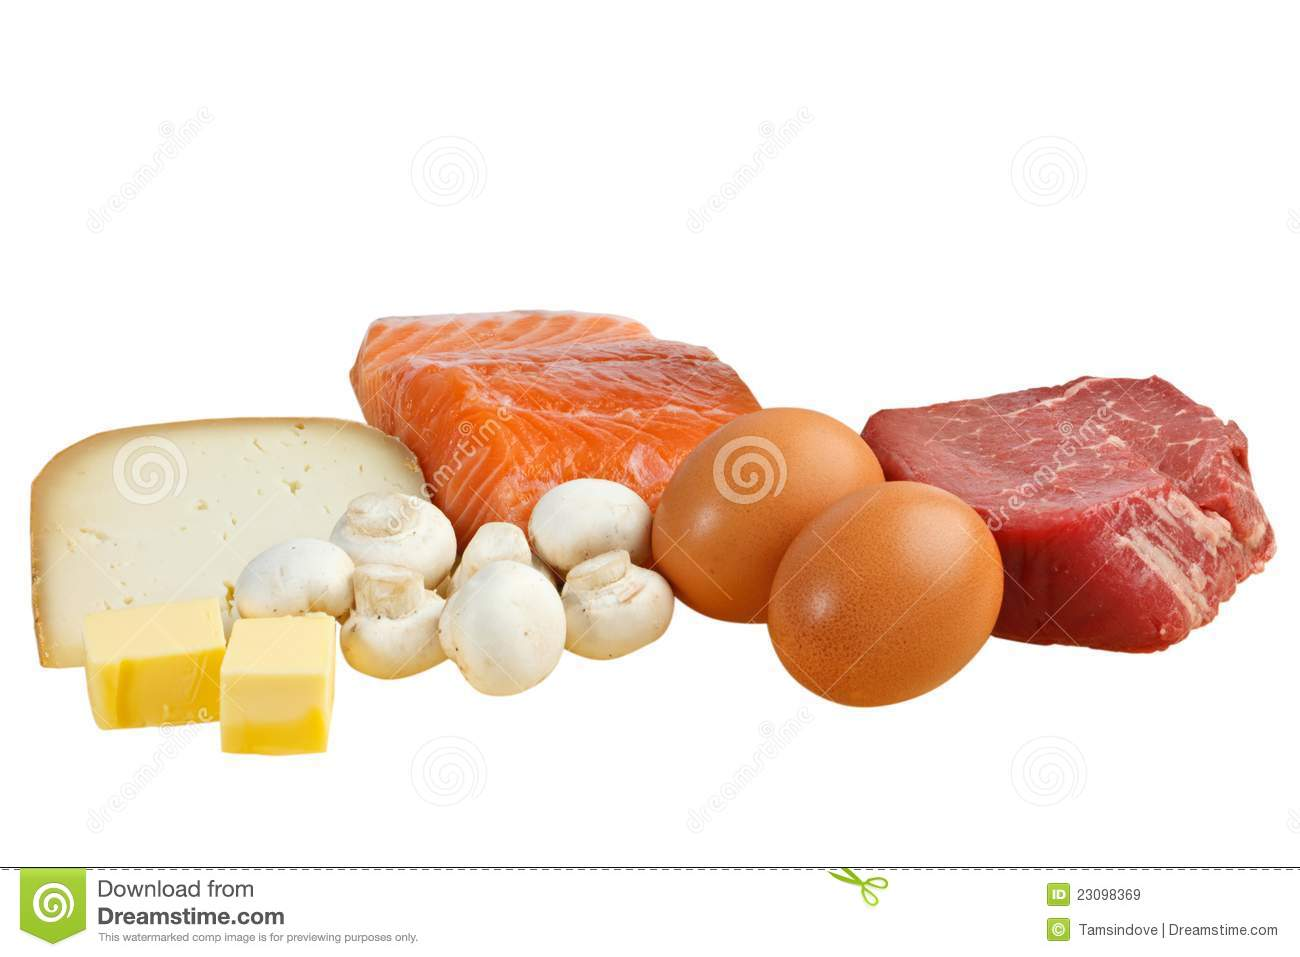 Of Vitamin D Is Sunlight  Vitamin D Occurs Naturally In Very Few Foods